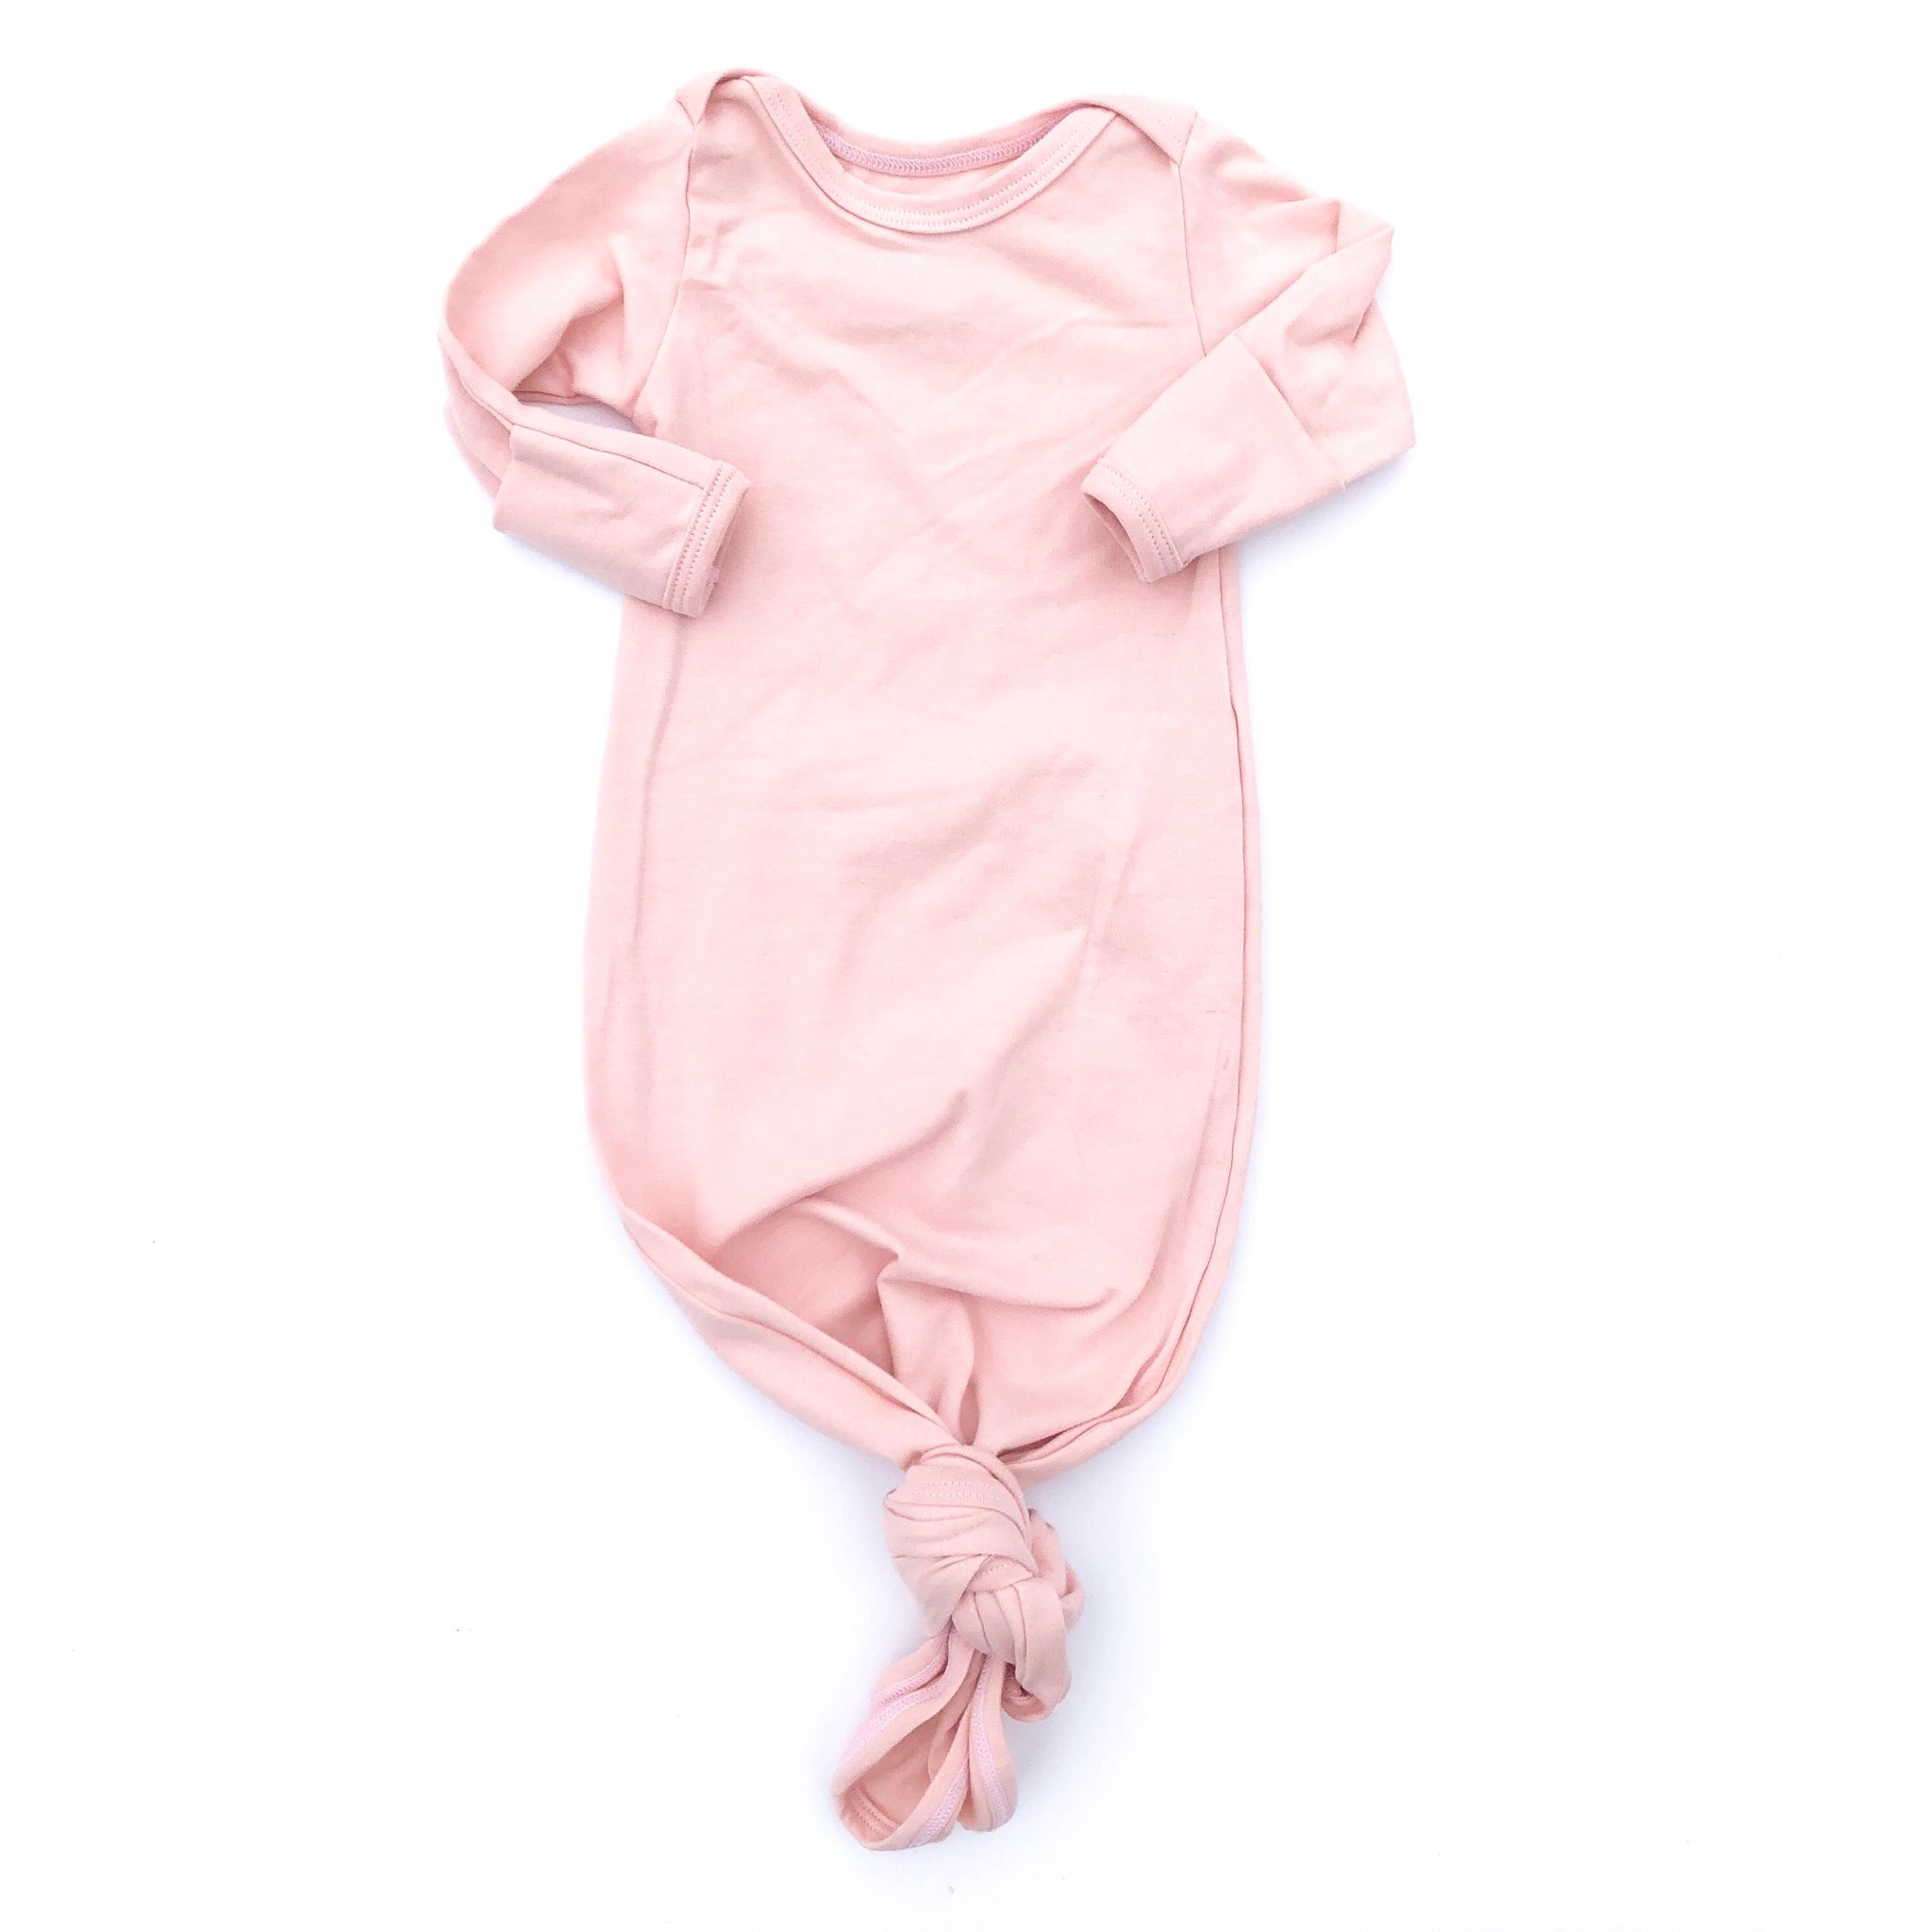 Blush Knotted Bottom Baby Layette Gown - Oh So Vera